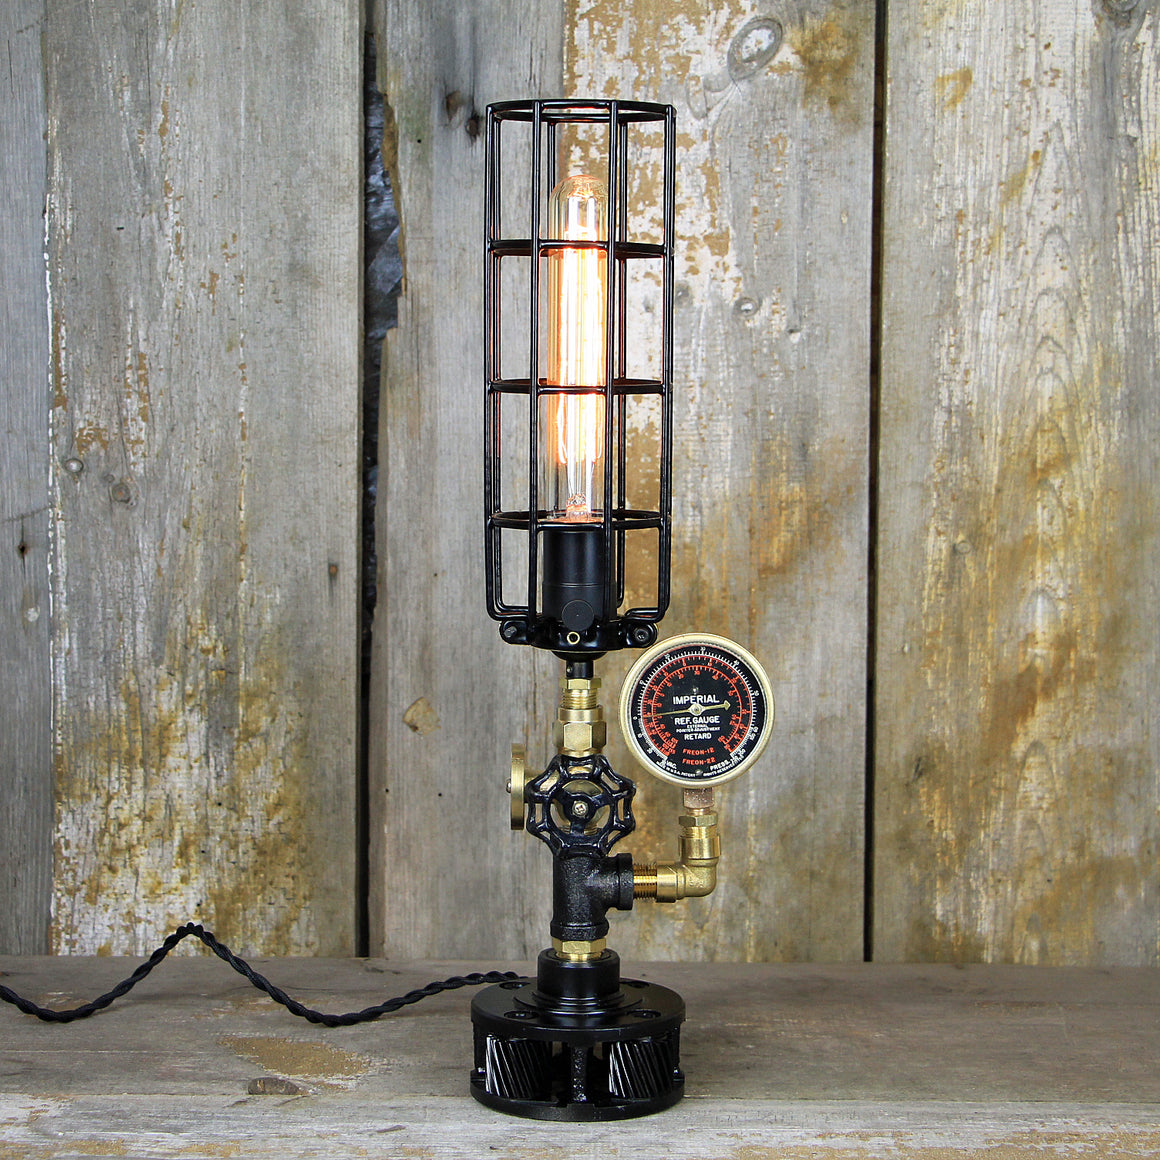 Industrial Table Lamp with a Brass Gauge & Valve - Steampunk Desk Lamp #110 - The Lighting Works